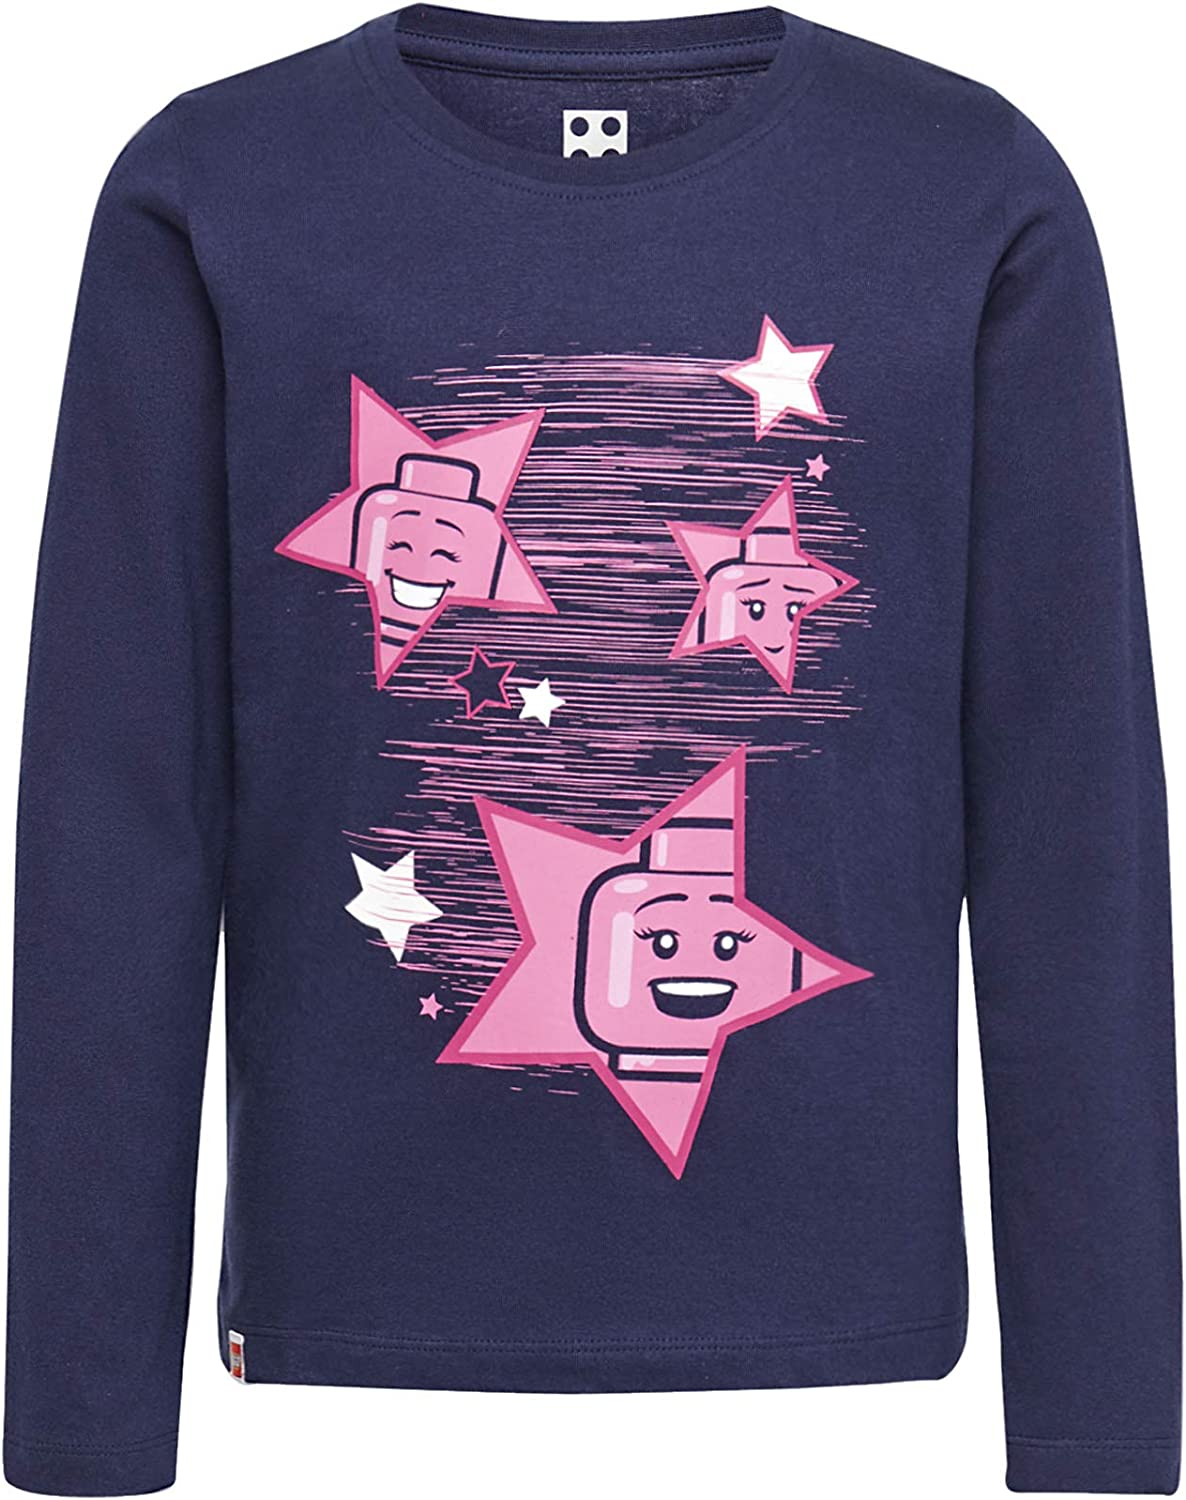 LEGO Girls cm Long Sleeve Top